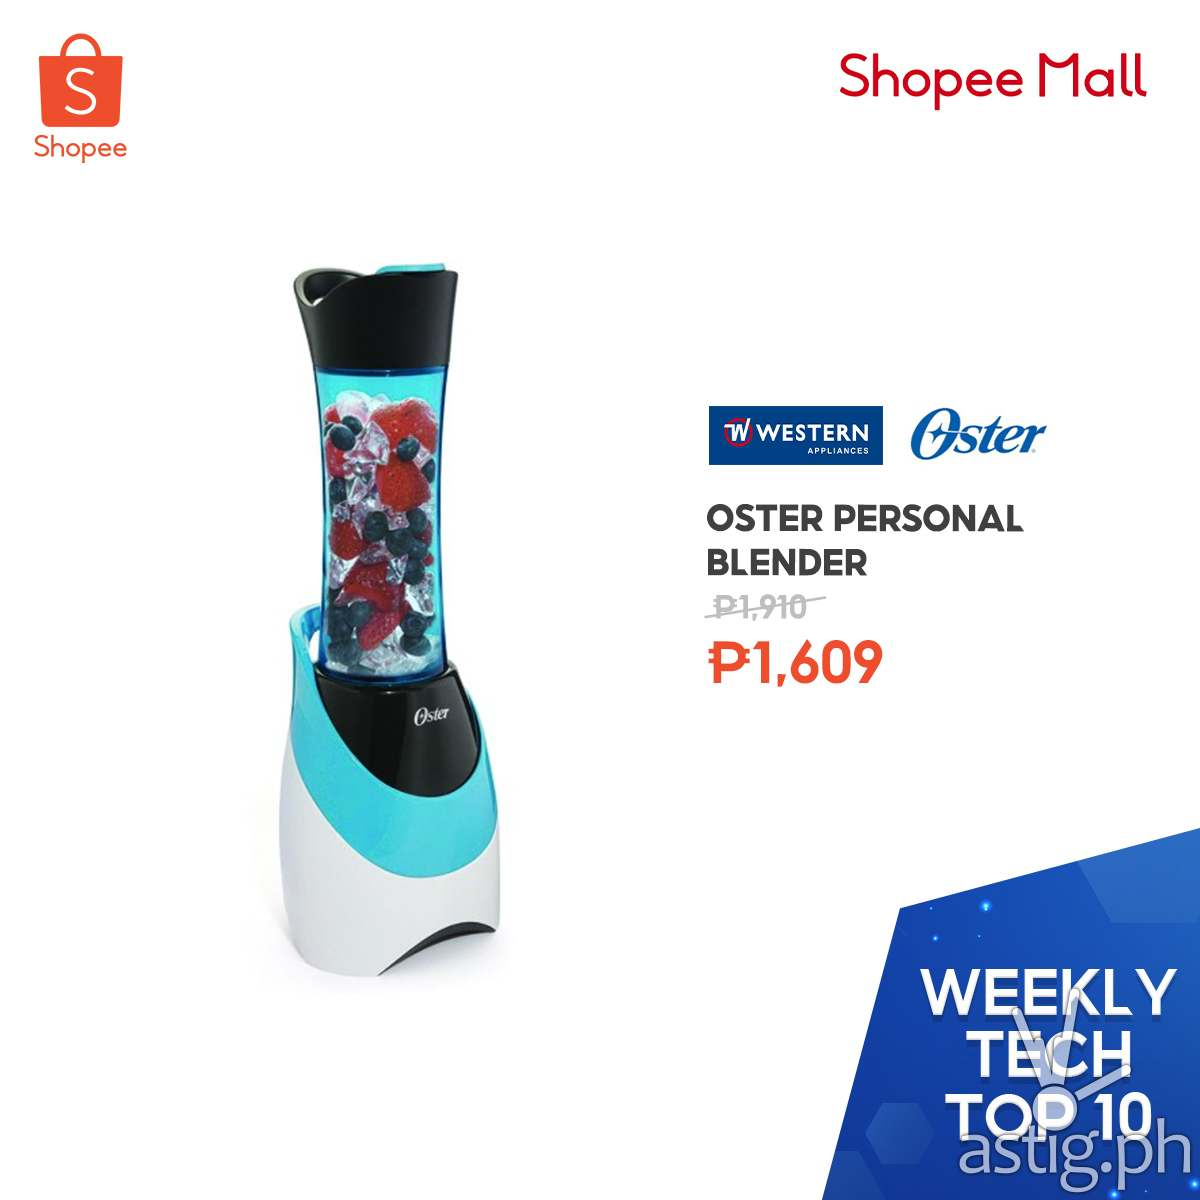 Oster Personal Blender